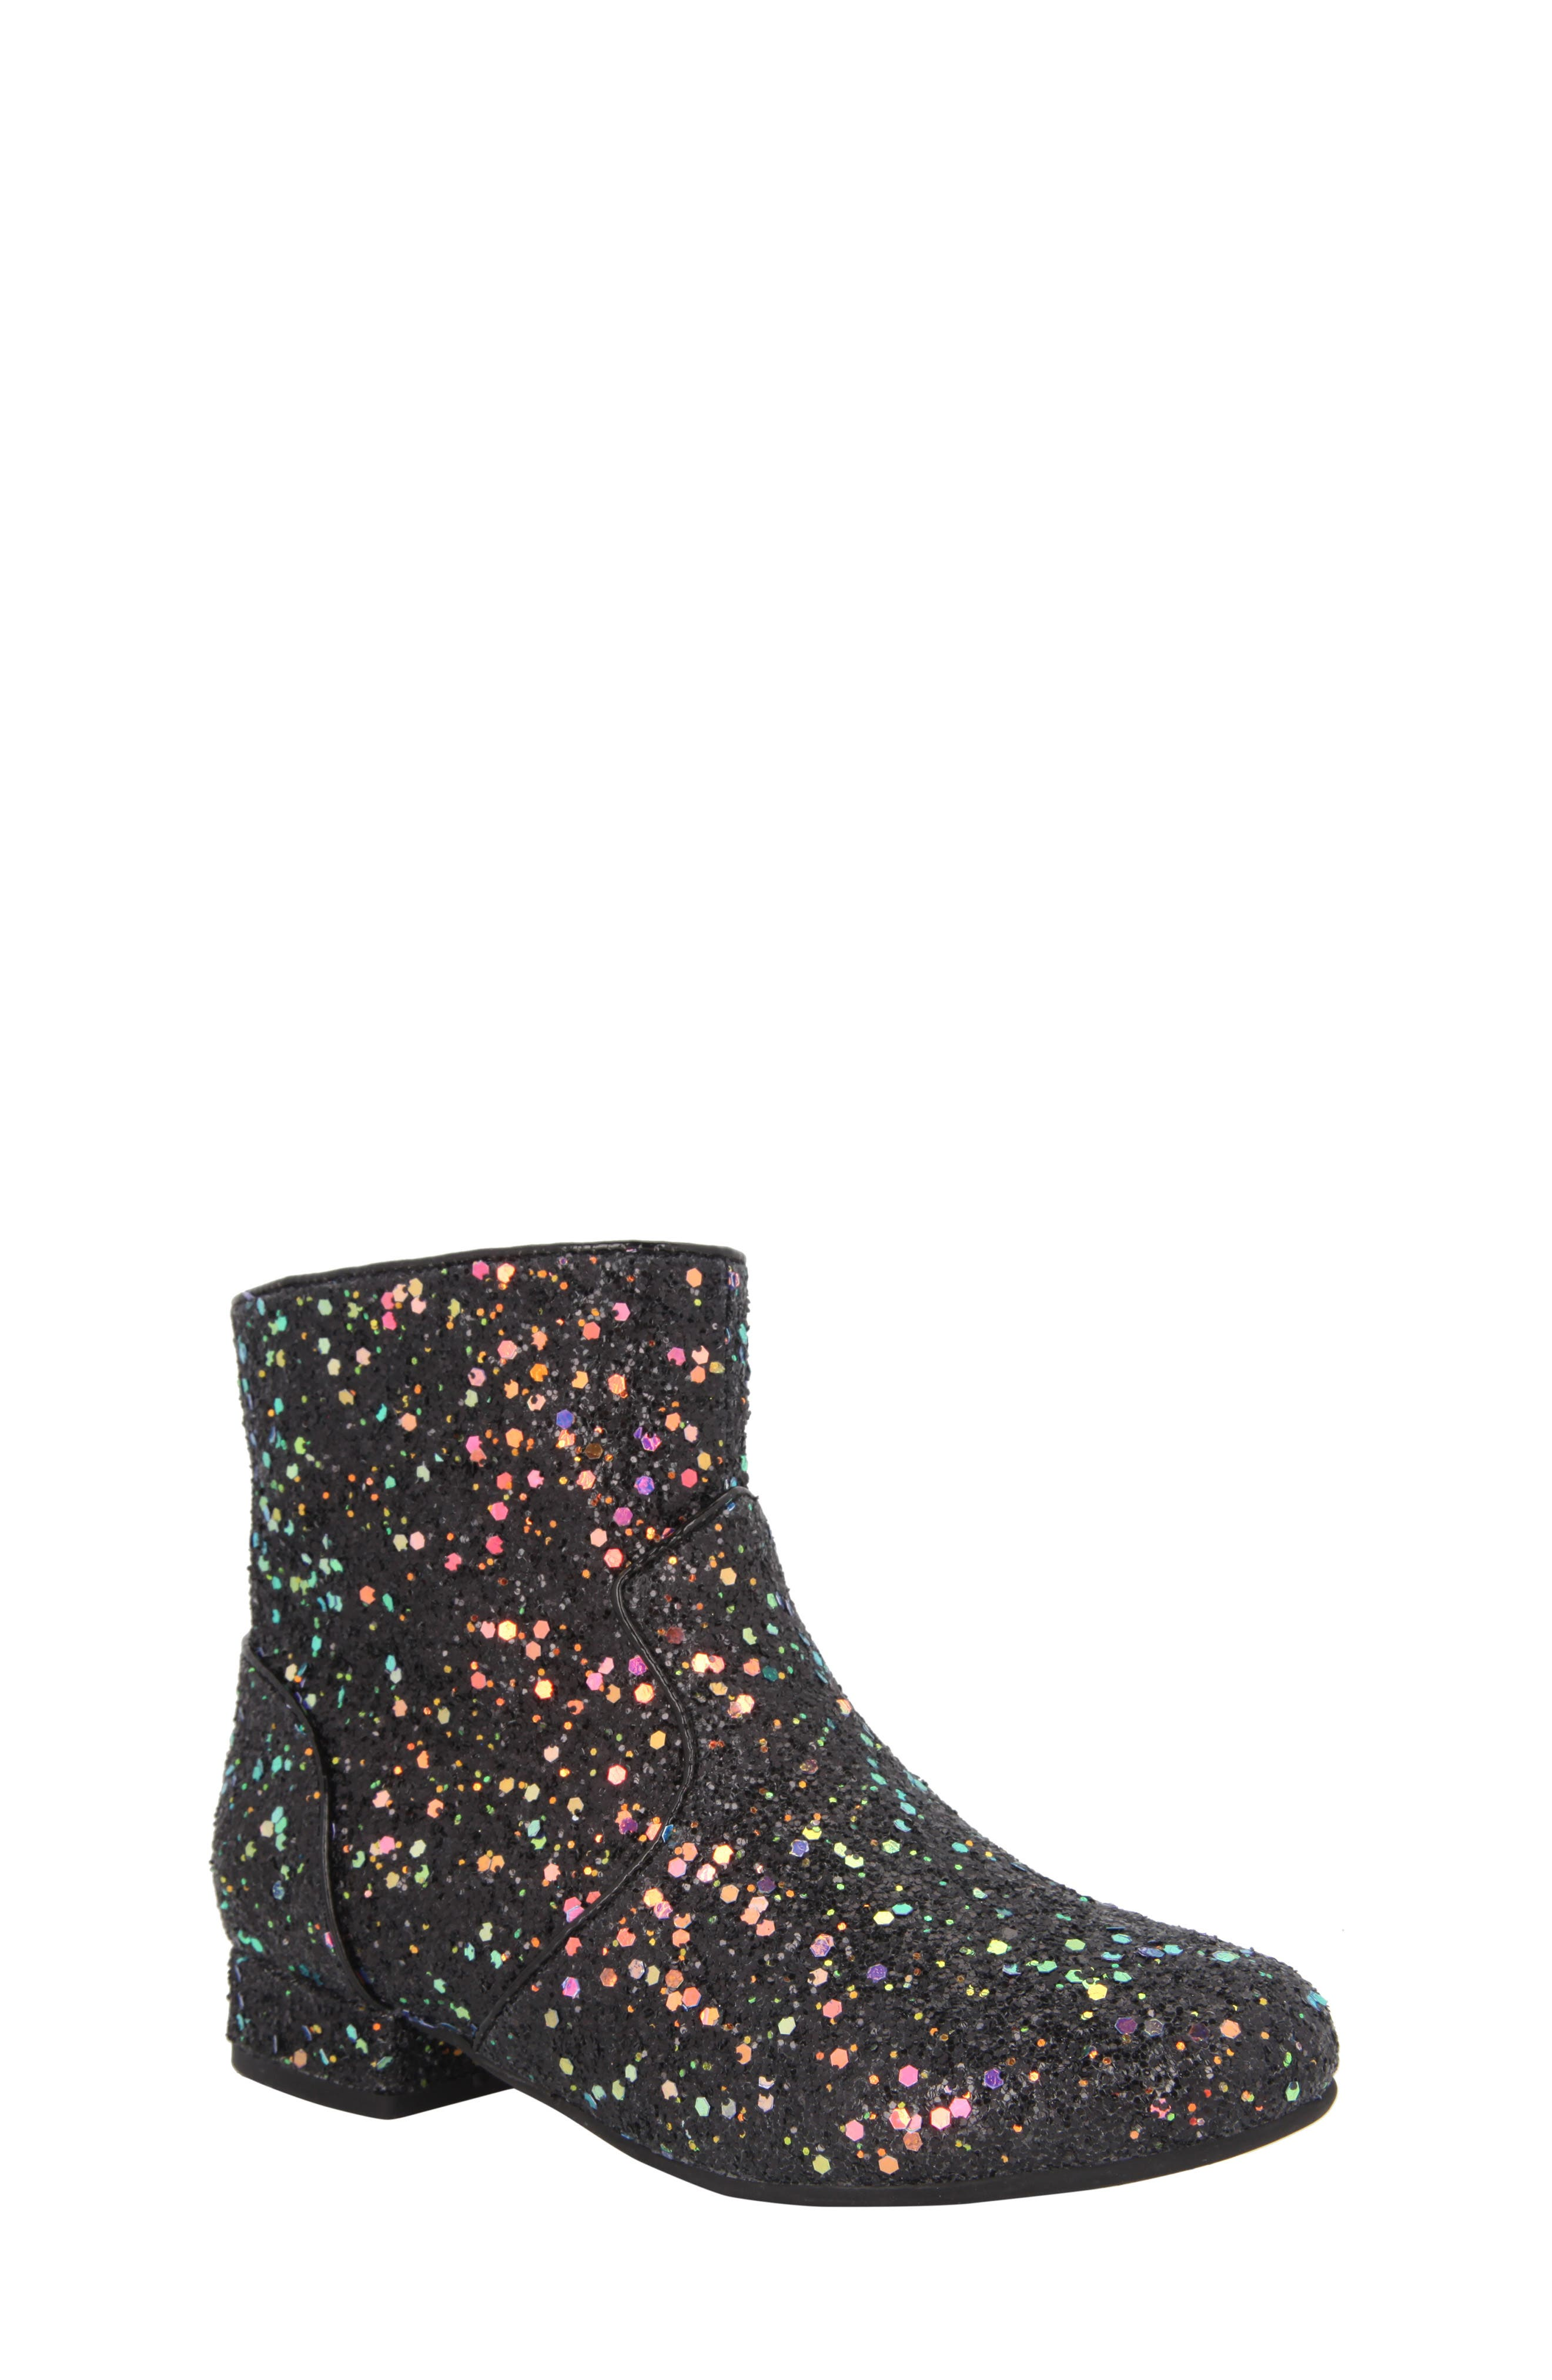 Amy Multicolor Glitter Bootie,                             Main thumbnail 1, color,                             Black Chunky Glitter